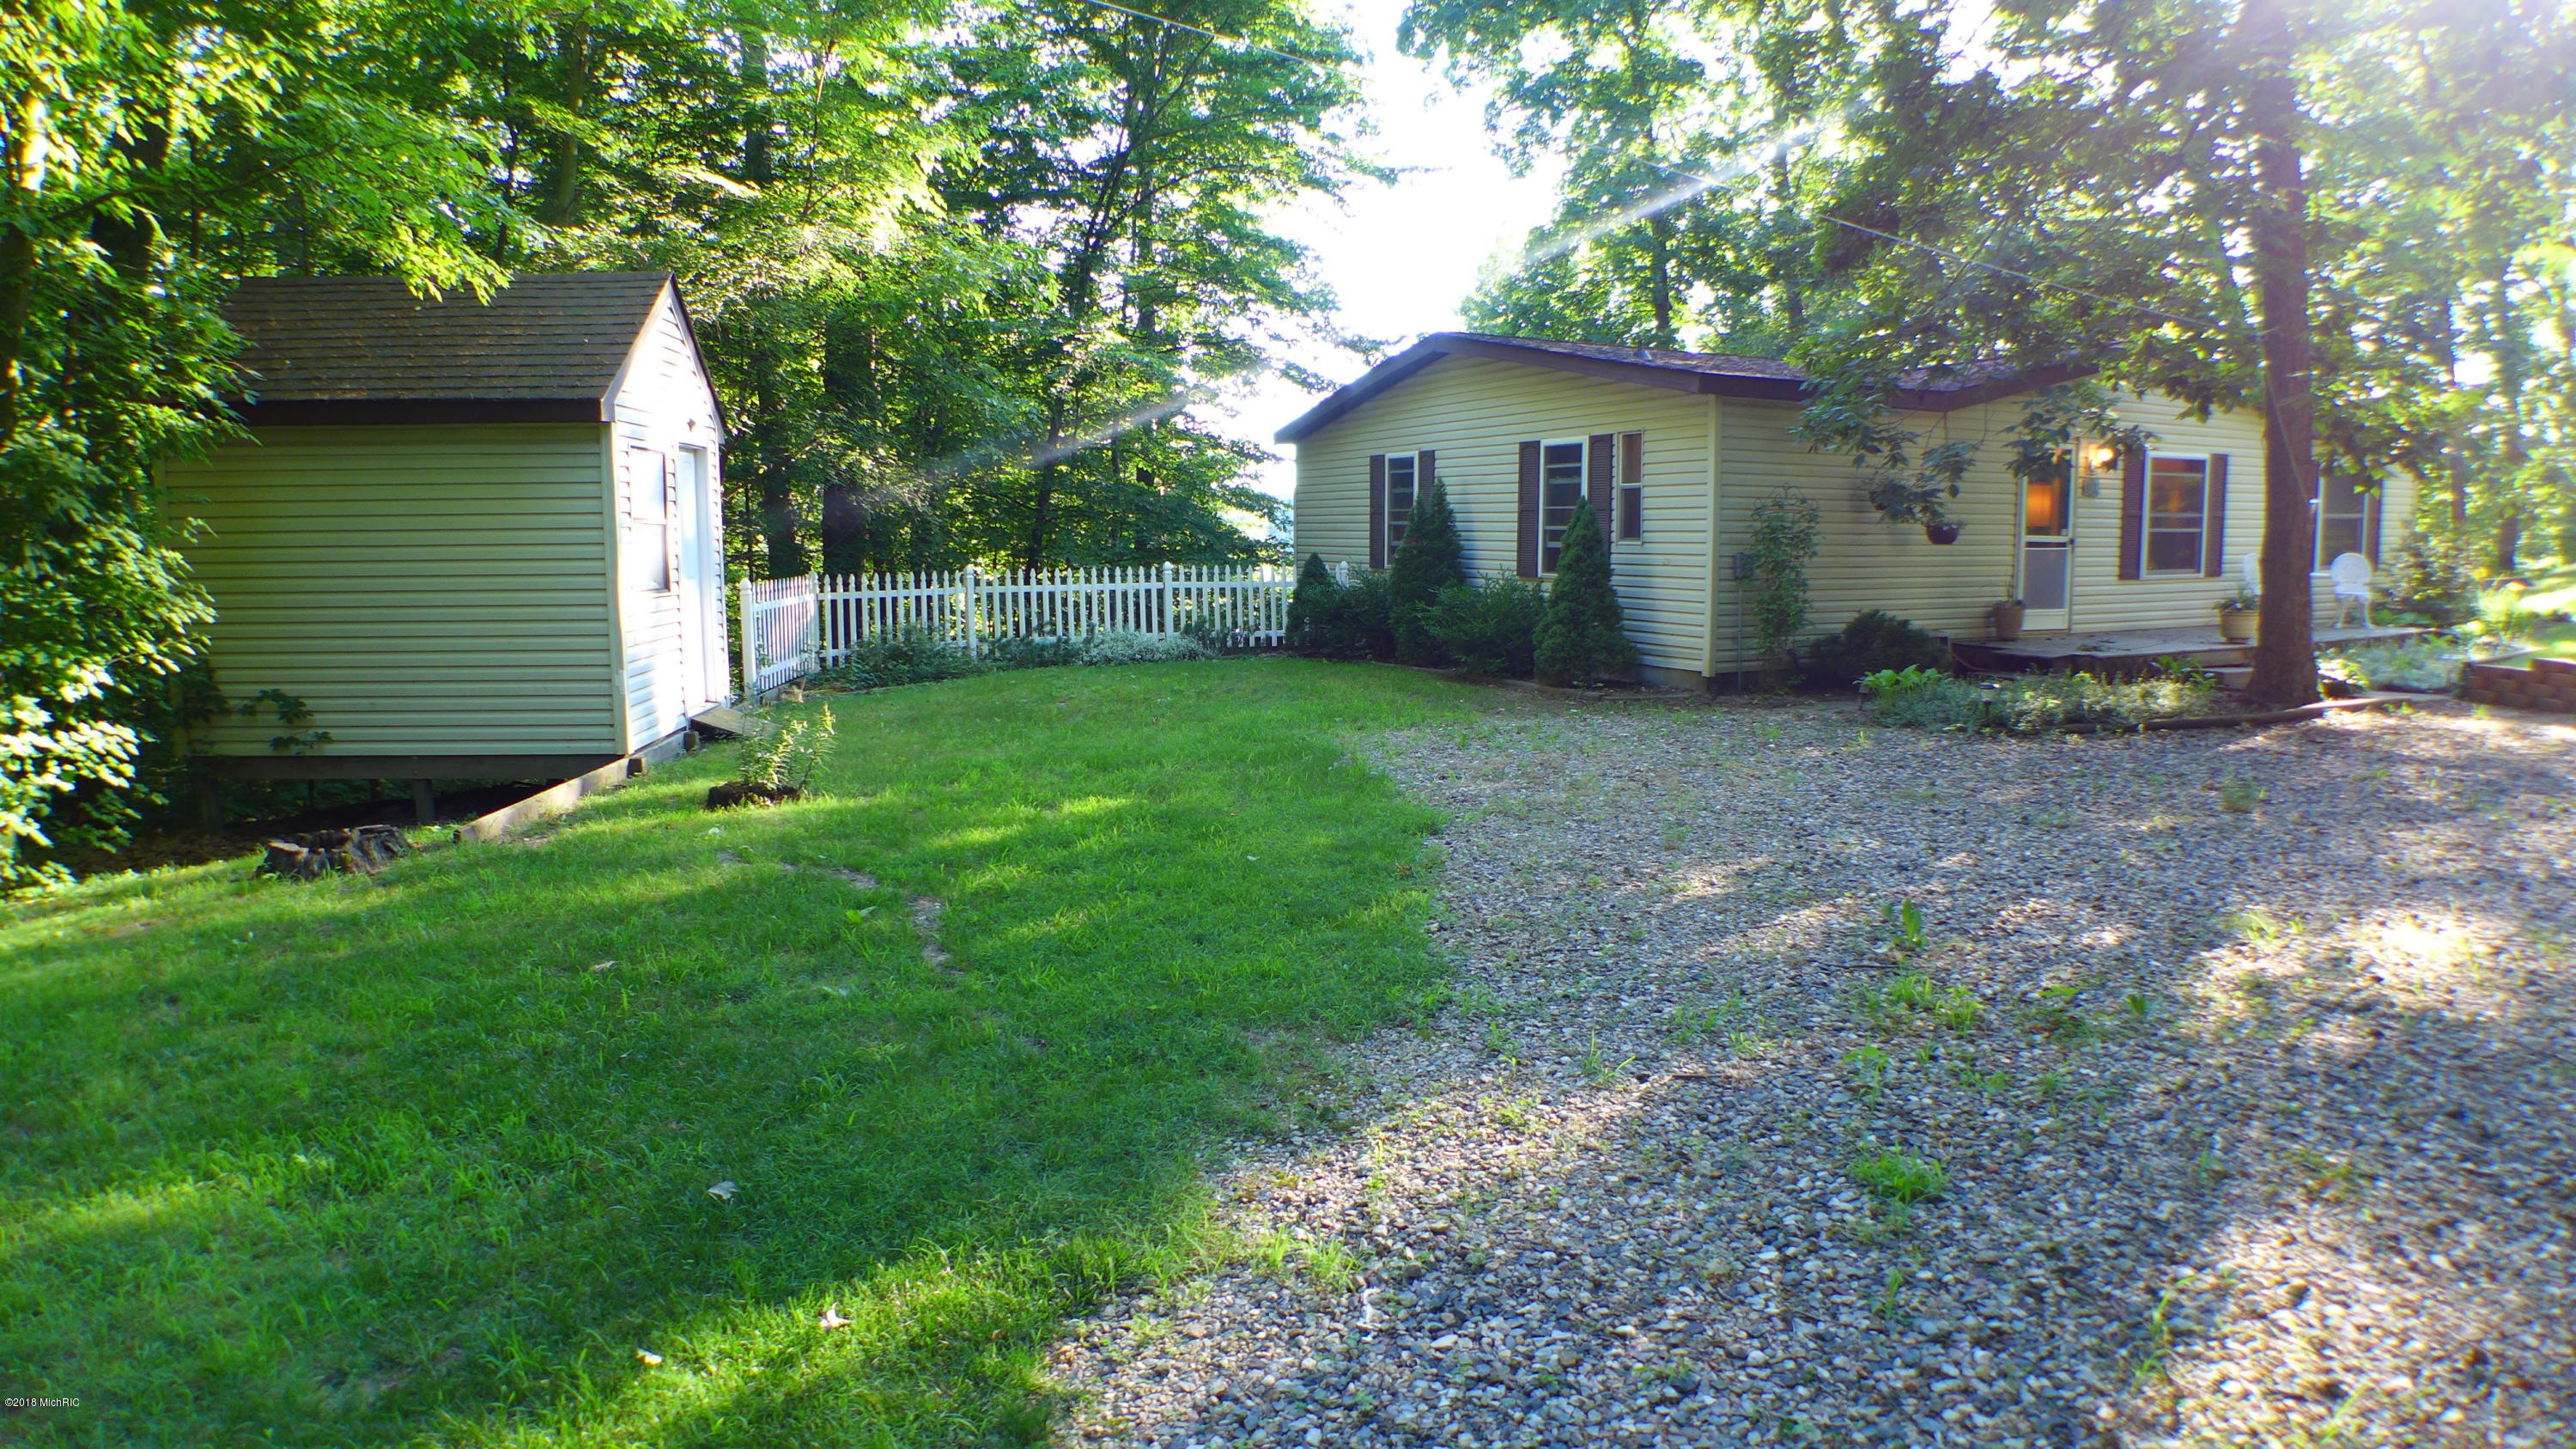 8500 Lammers , Delton, MI 49046 Photo 6